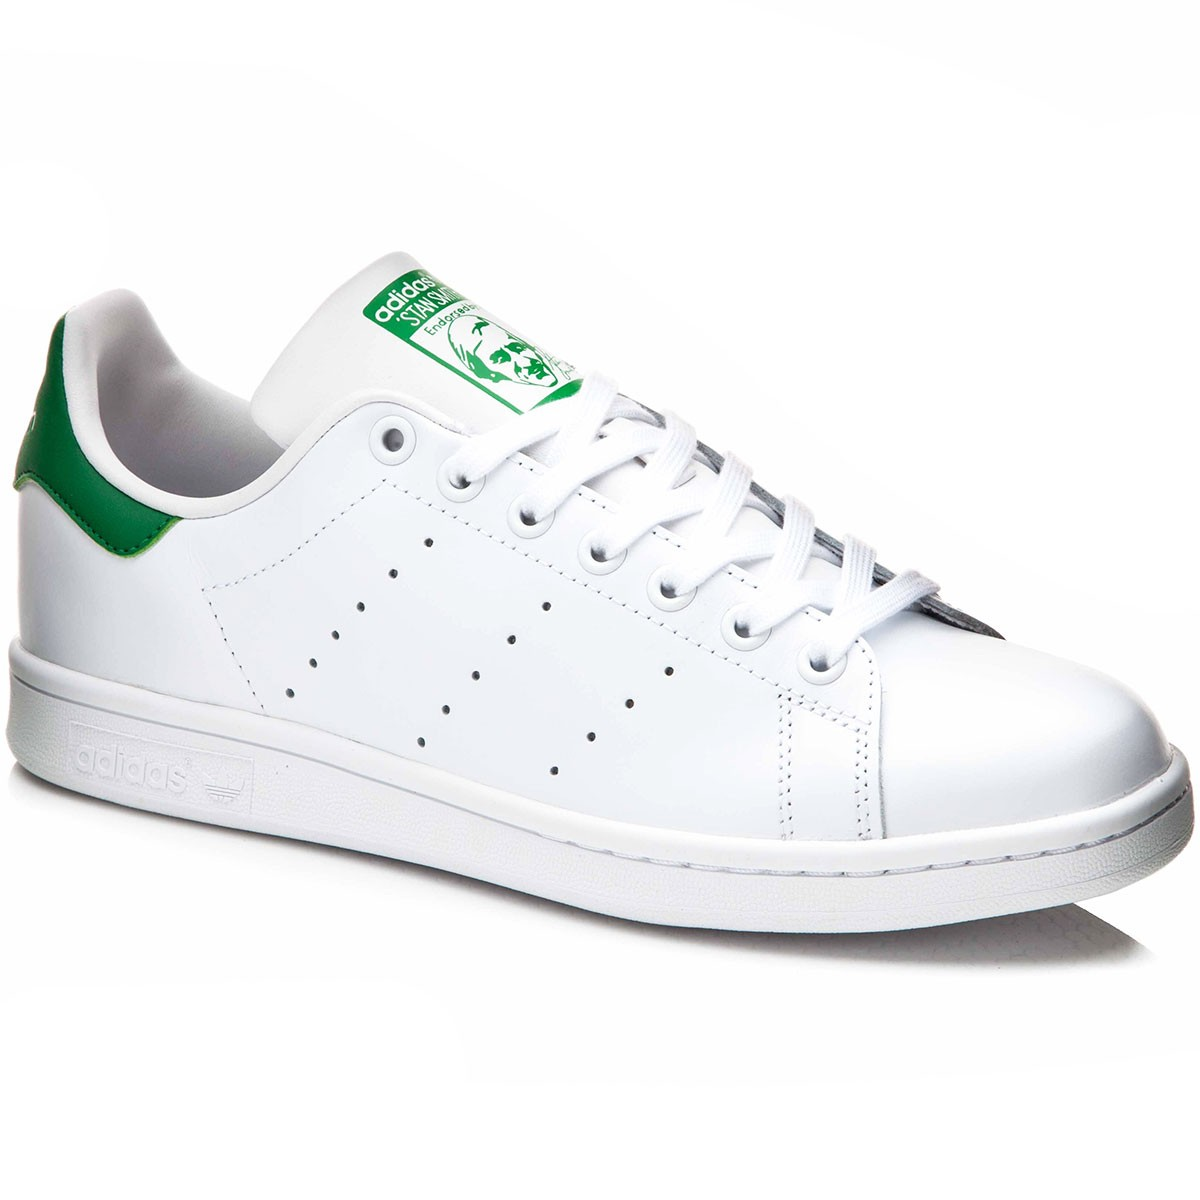 adidas stan smith shoes for sale